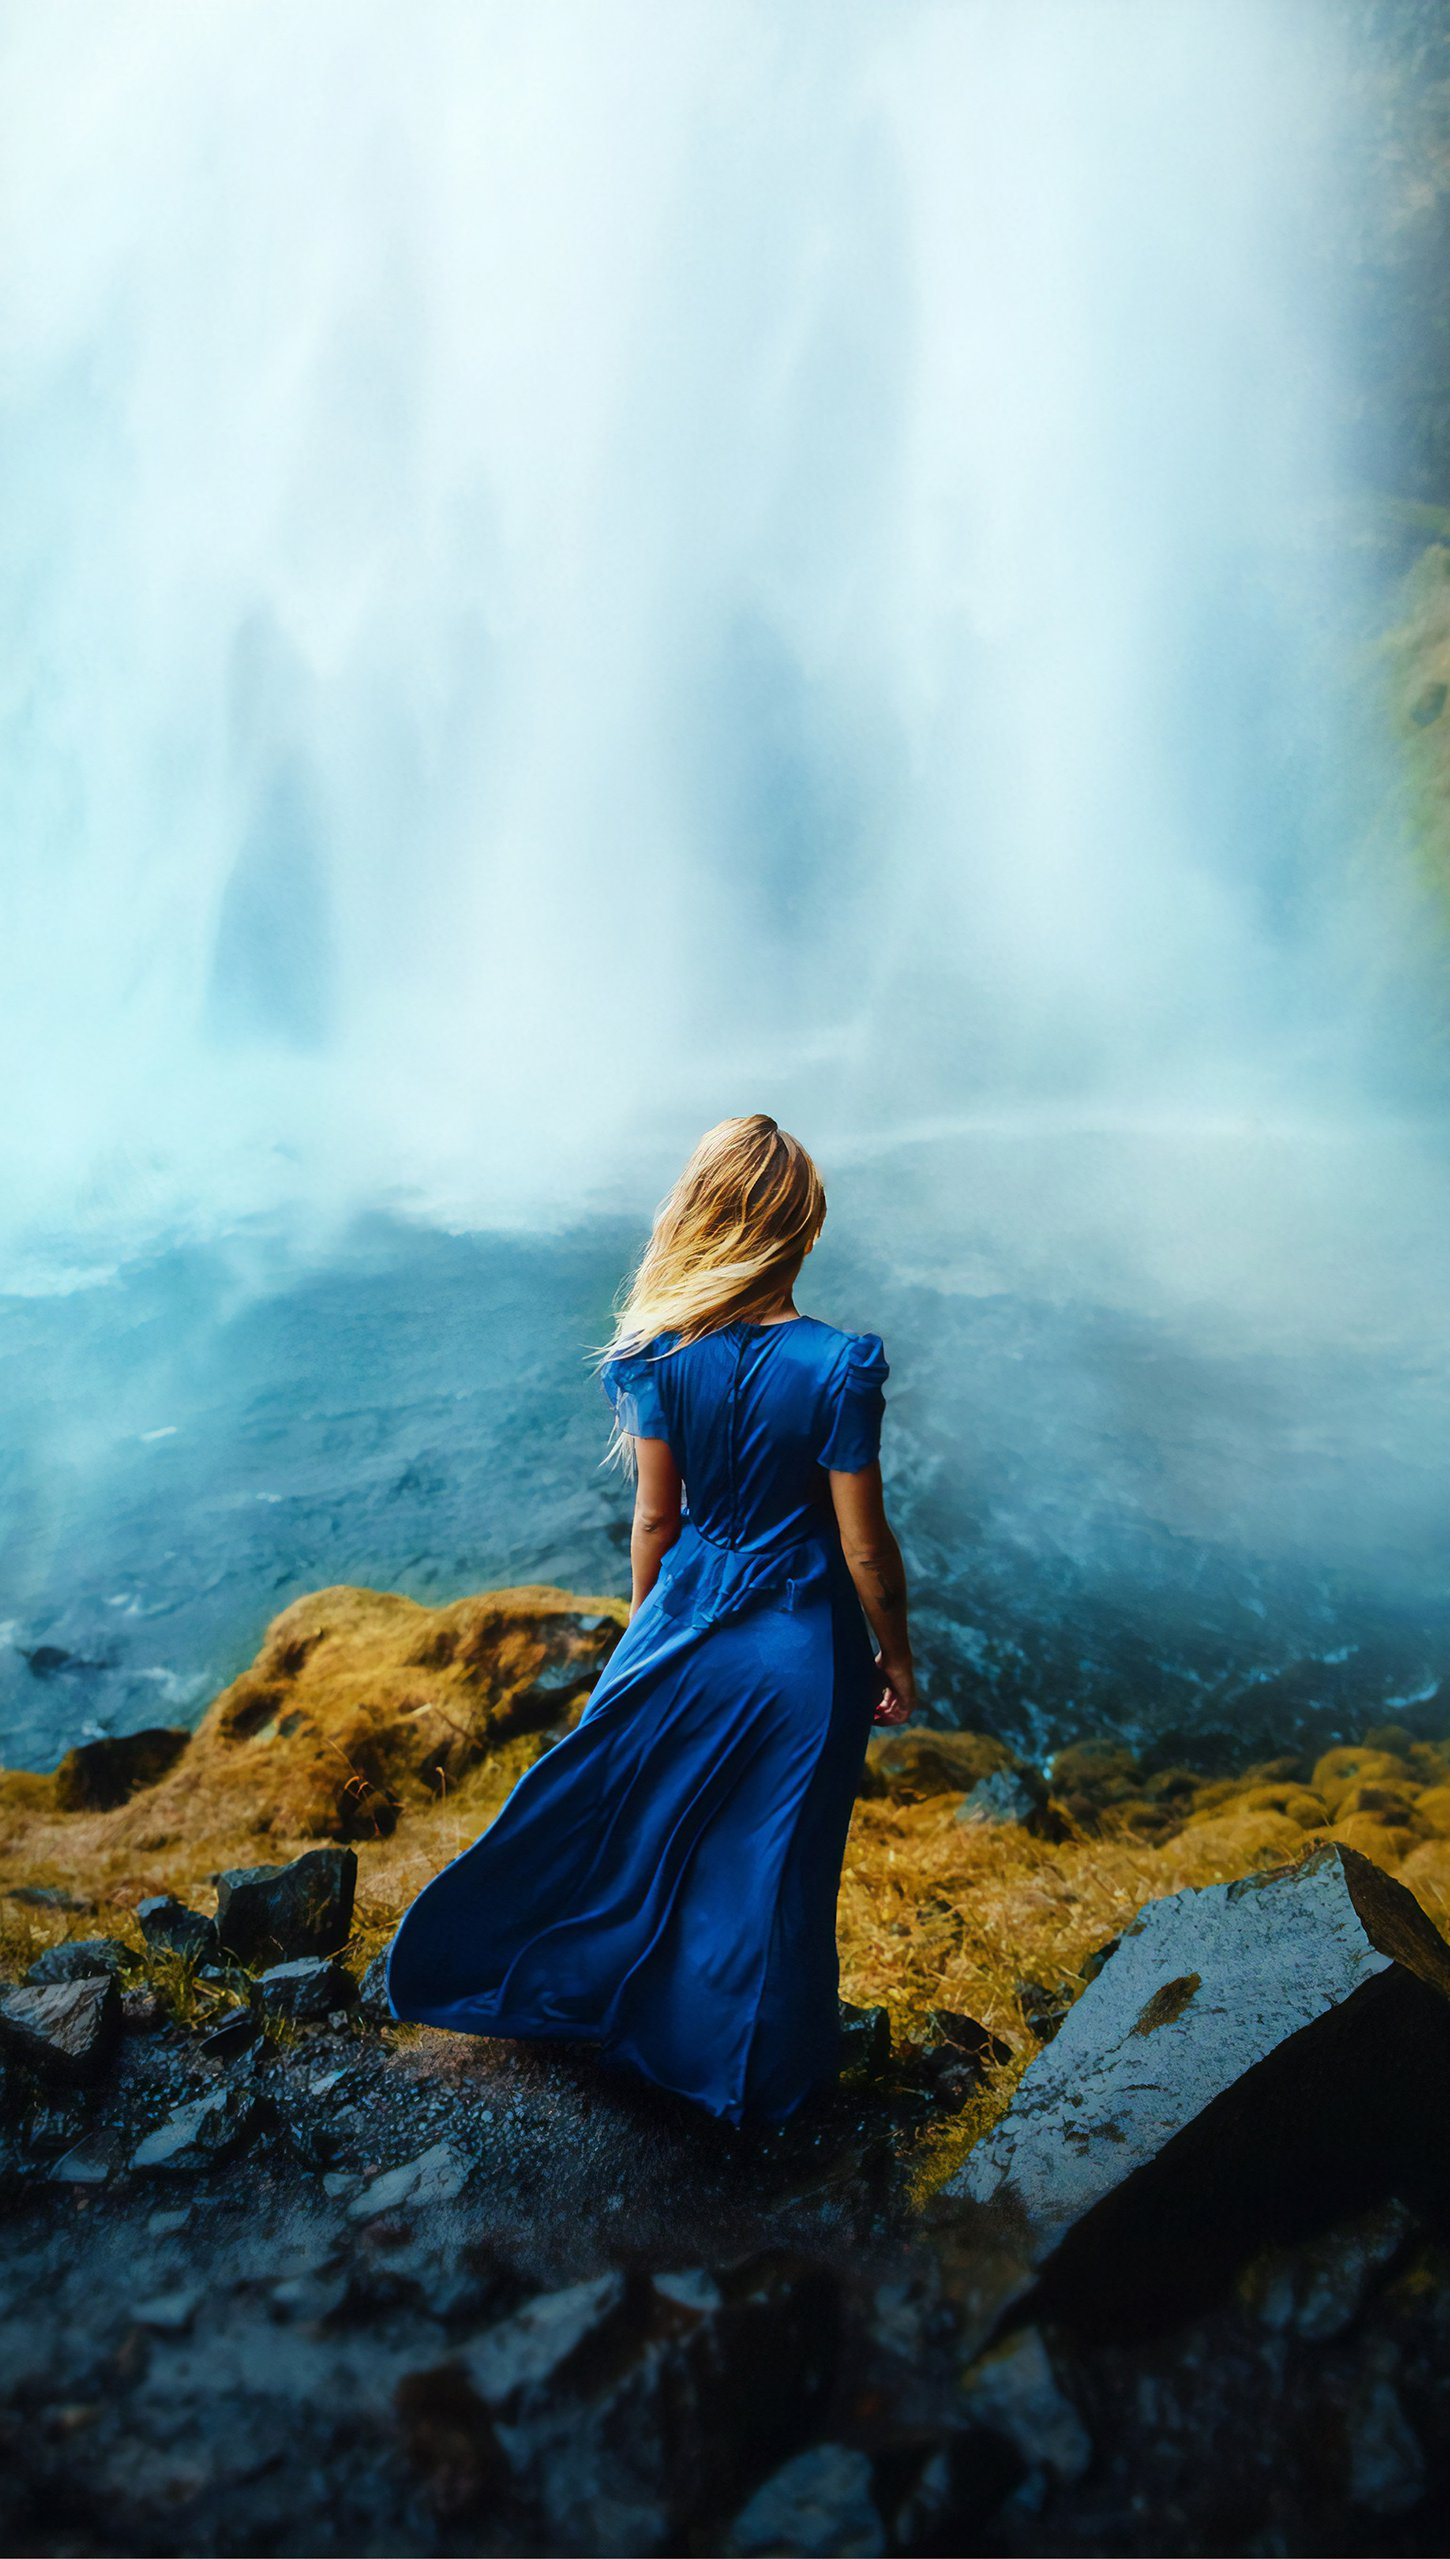 Wallpaper Woman in a dress in front of waterfall Vertical